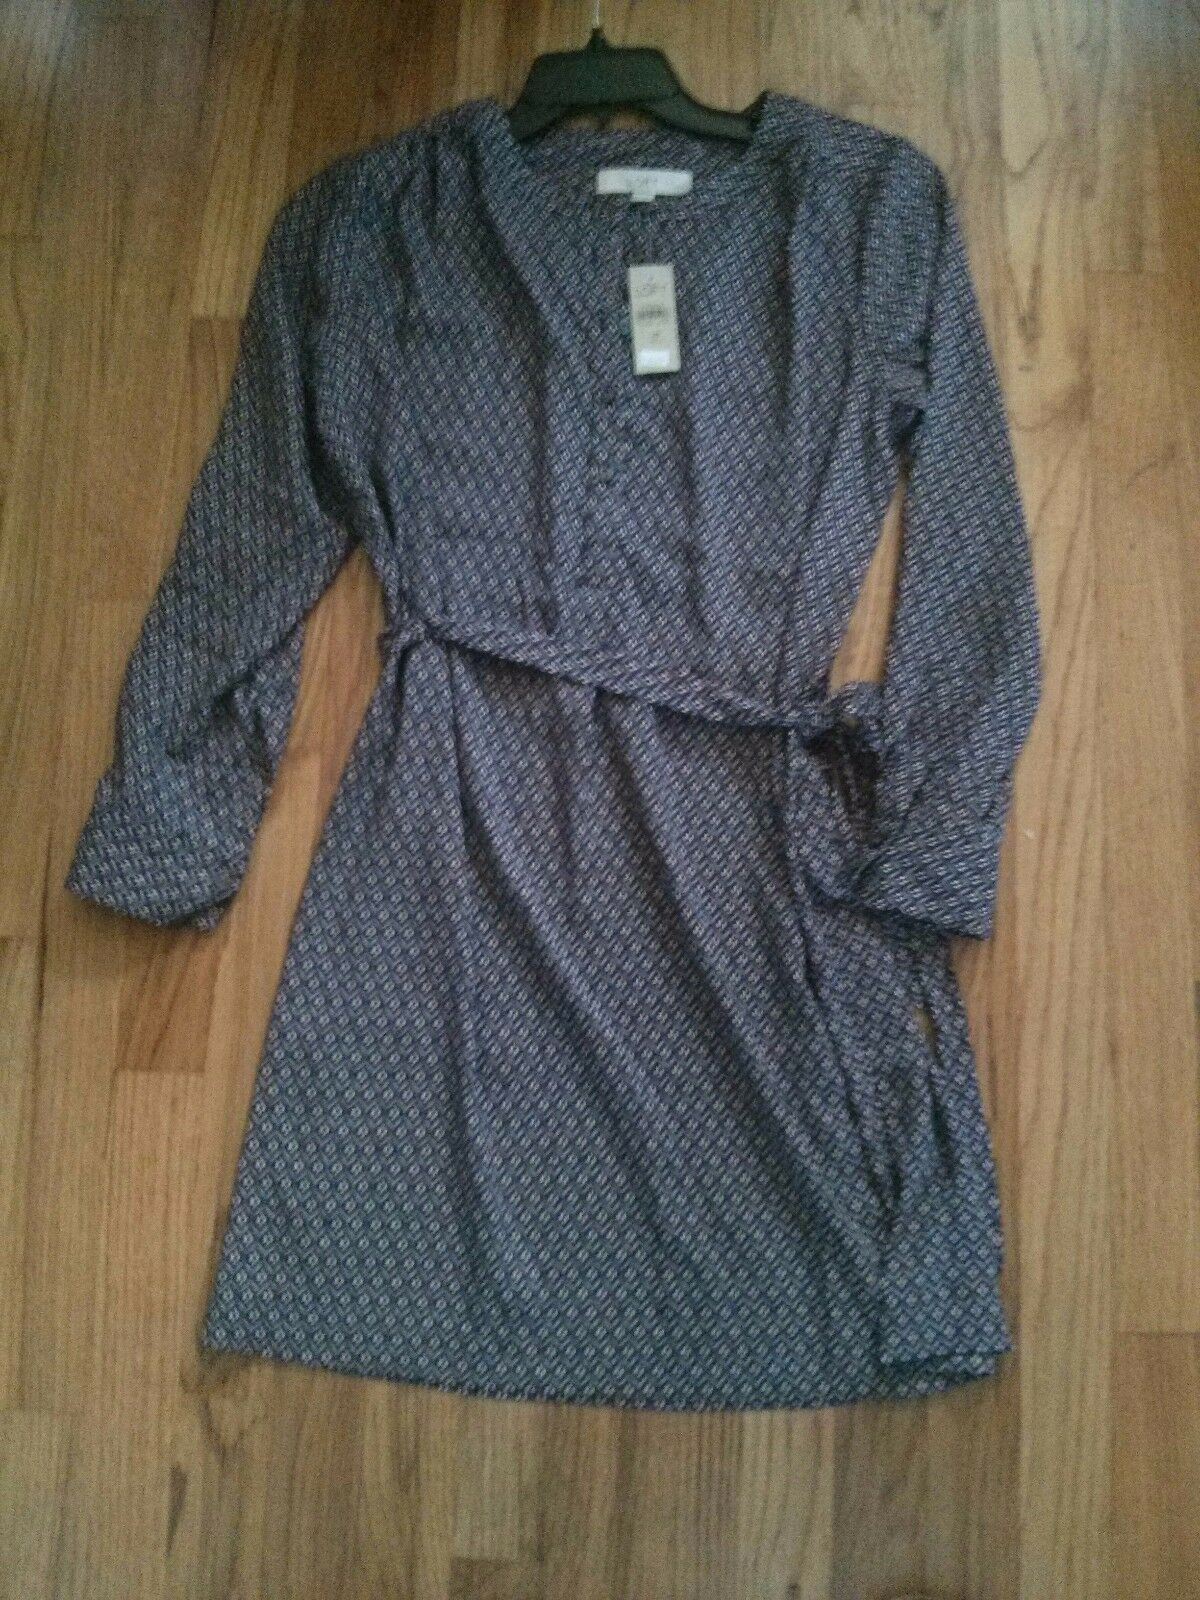 ANN TAYLOR LOFT DRESS, M,  New Arrivals, New  W   TAG